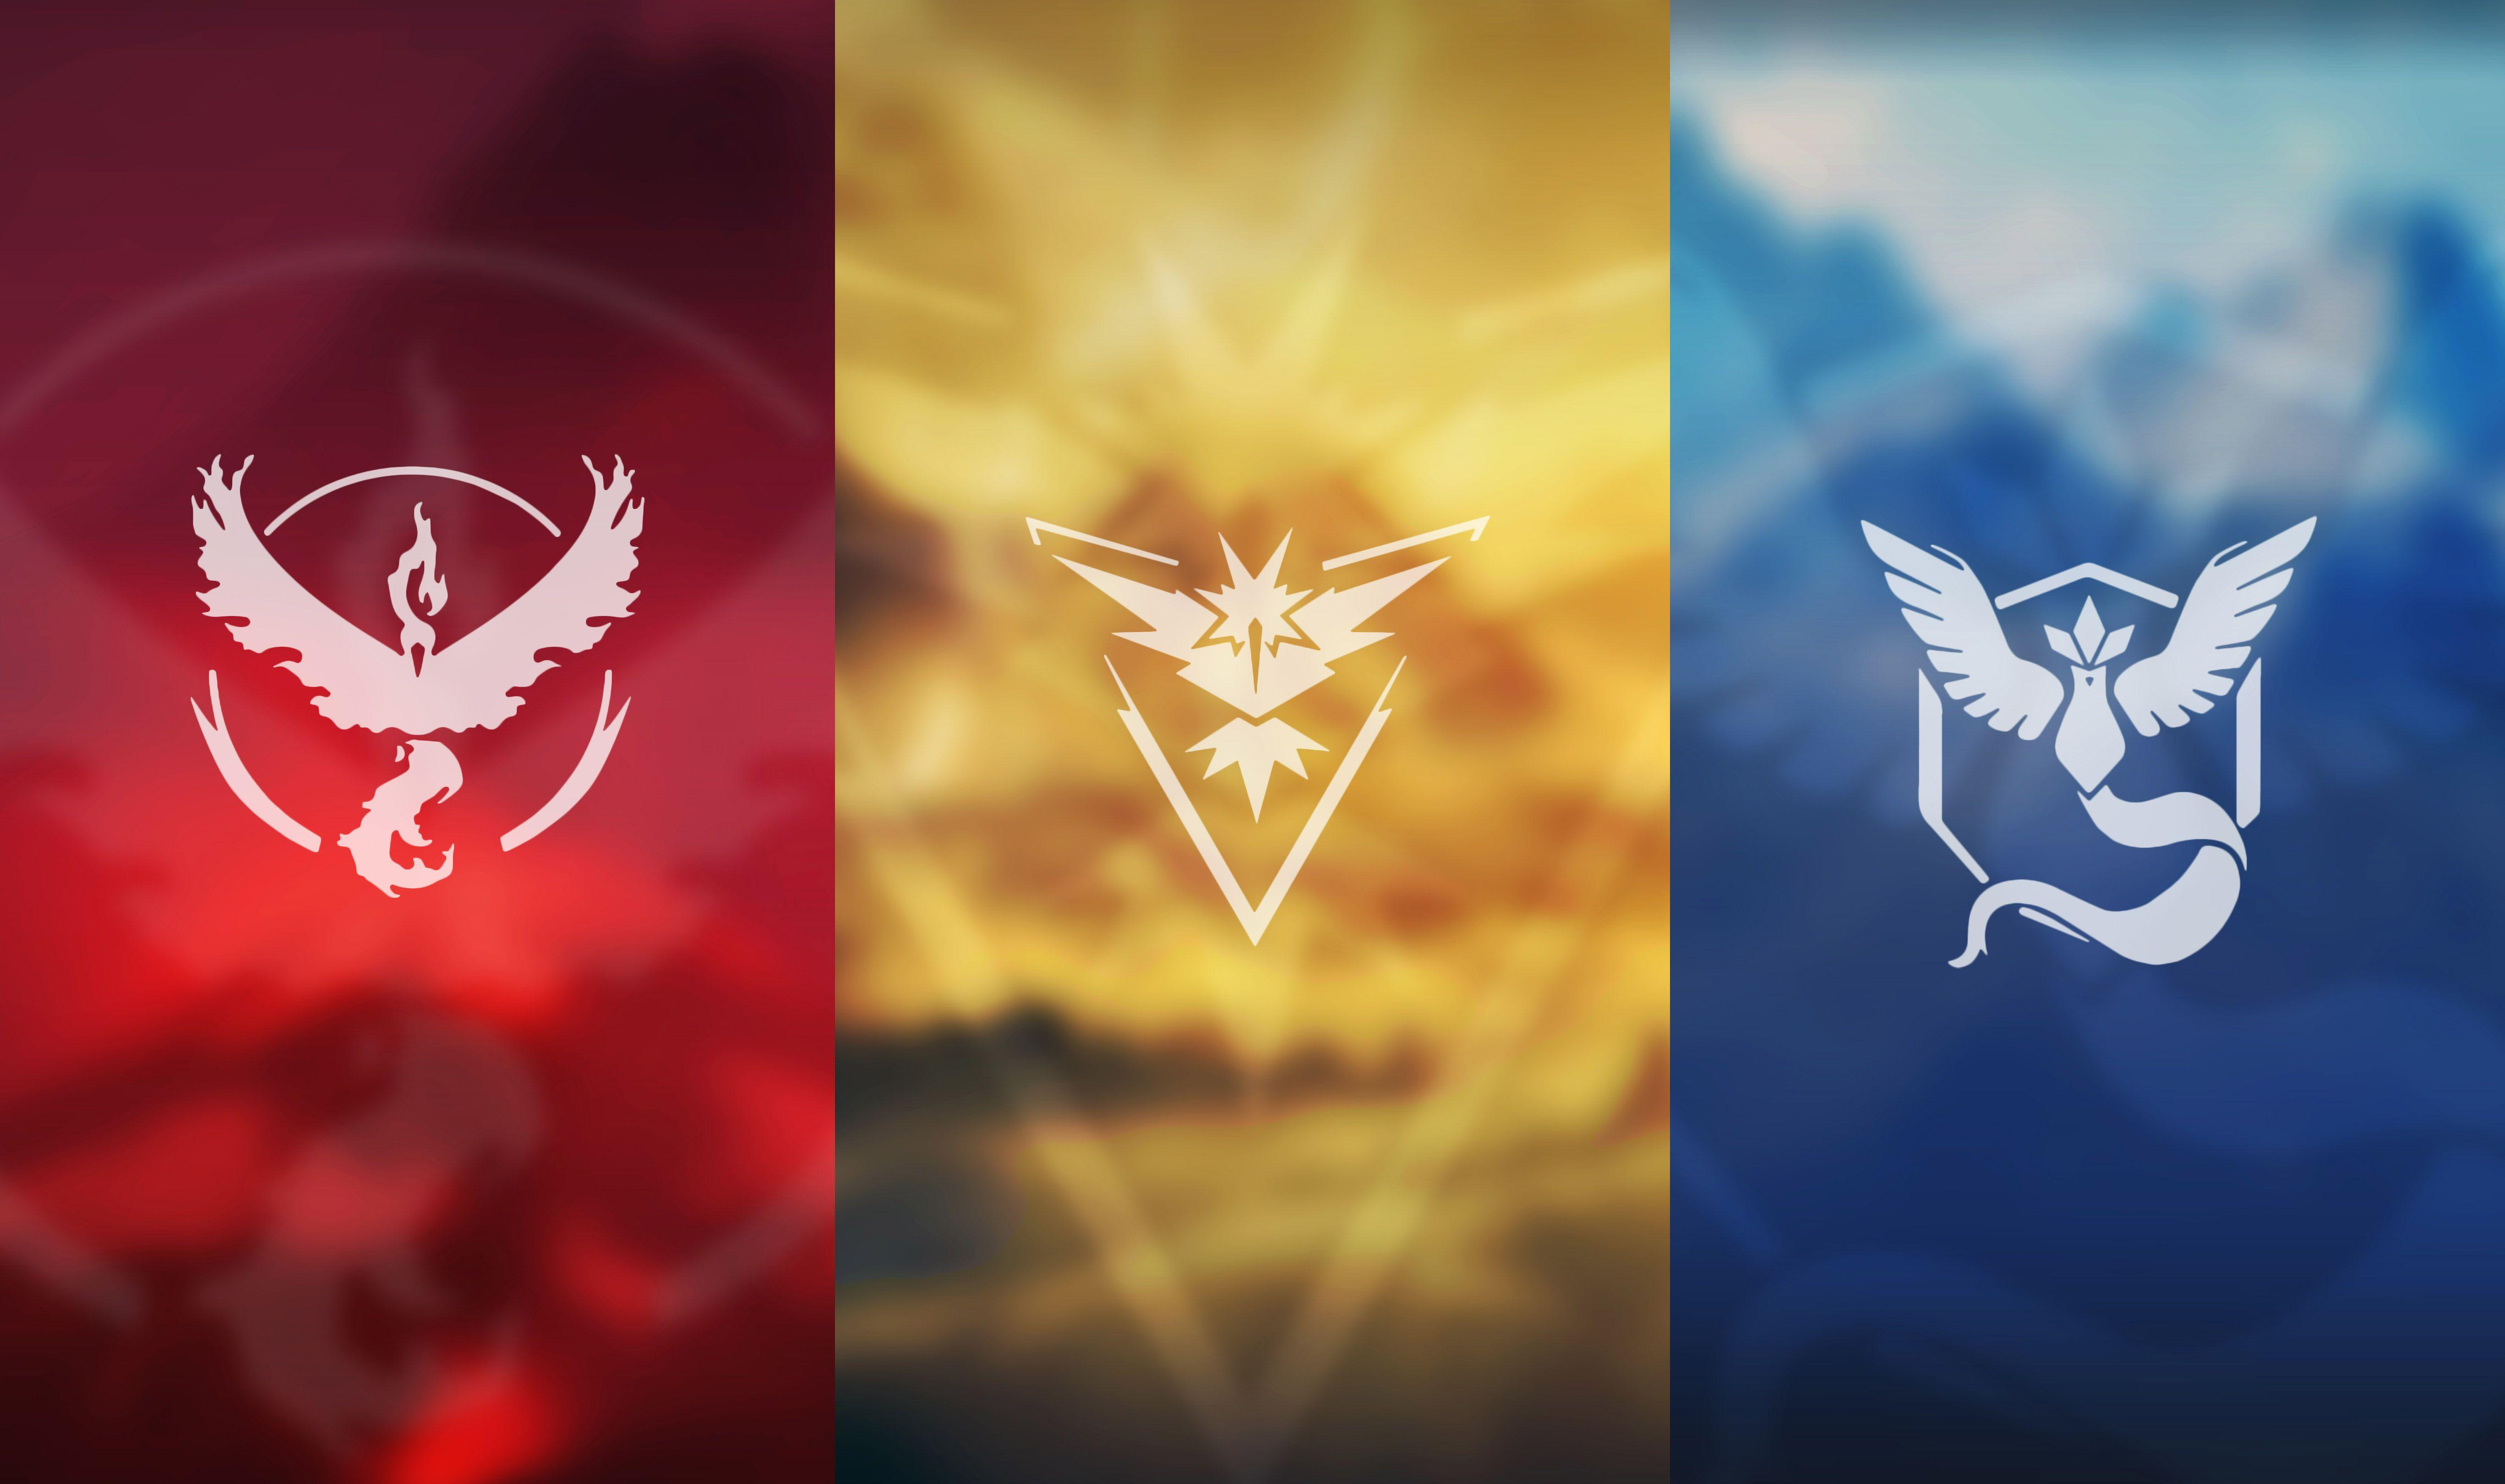 Wallpapers Pokemon Go, Teams, Team Red, Team Blue, Team Yellow, Team